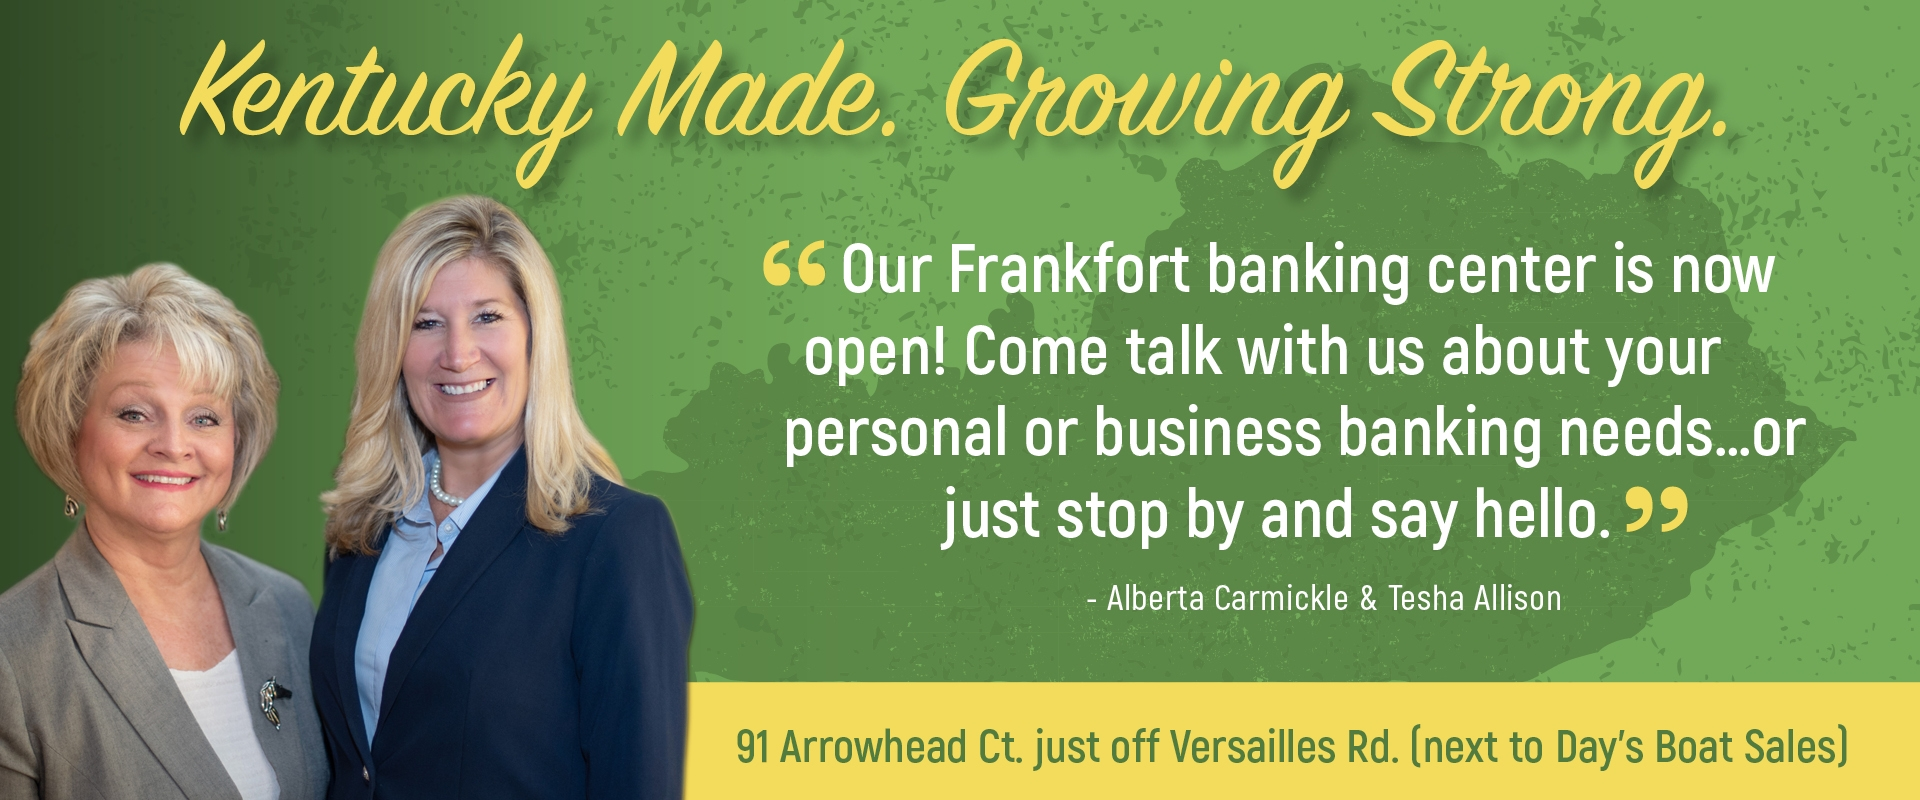 KY made Growing Strong with image of Alberta and Tesha from Frankfort branch Banner